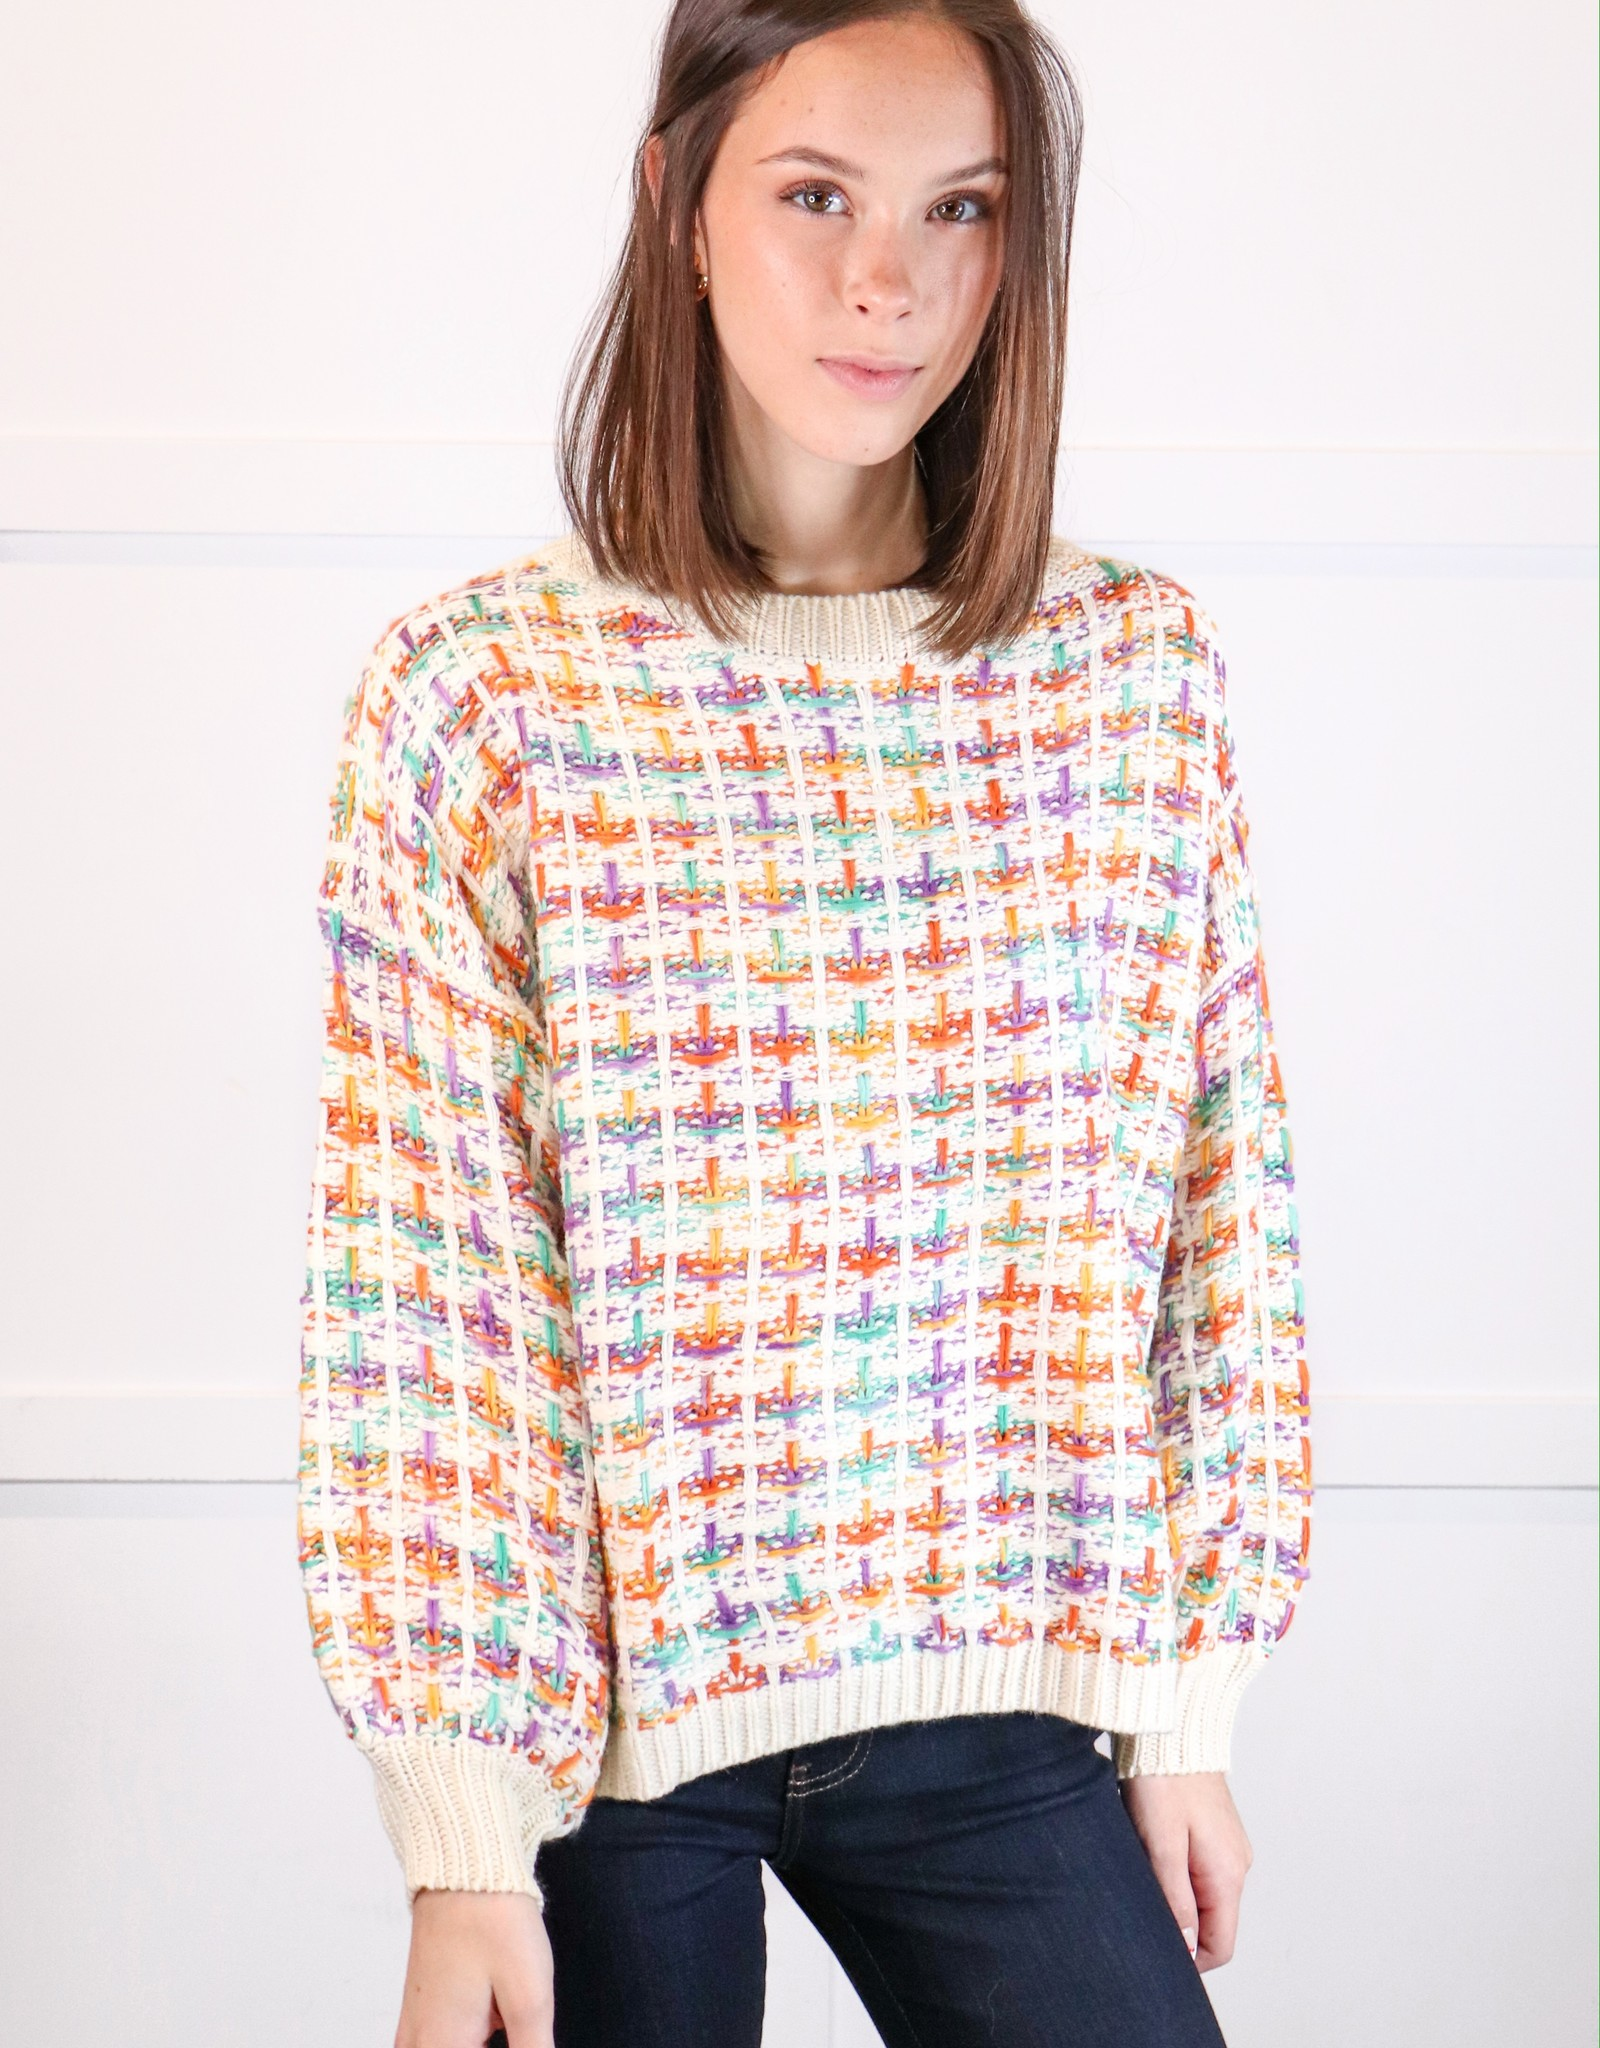 HUSH Boucle pullover sweater